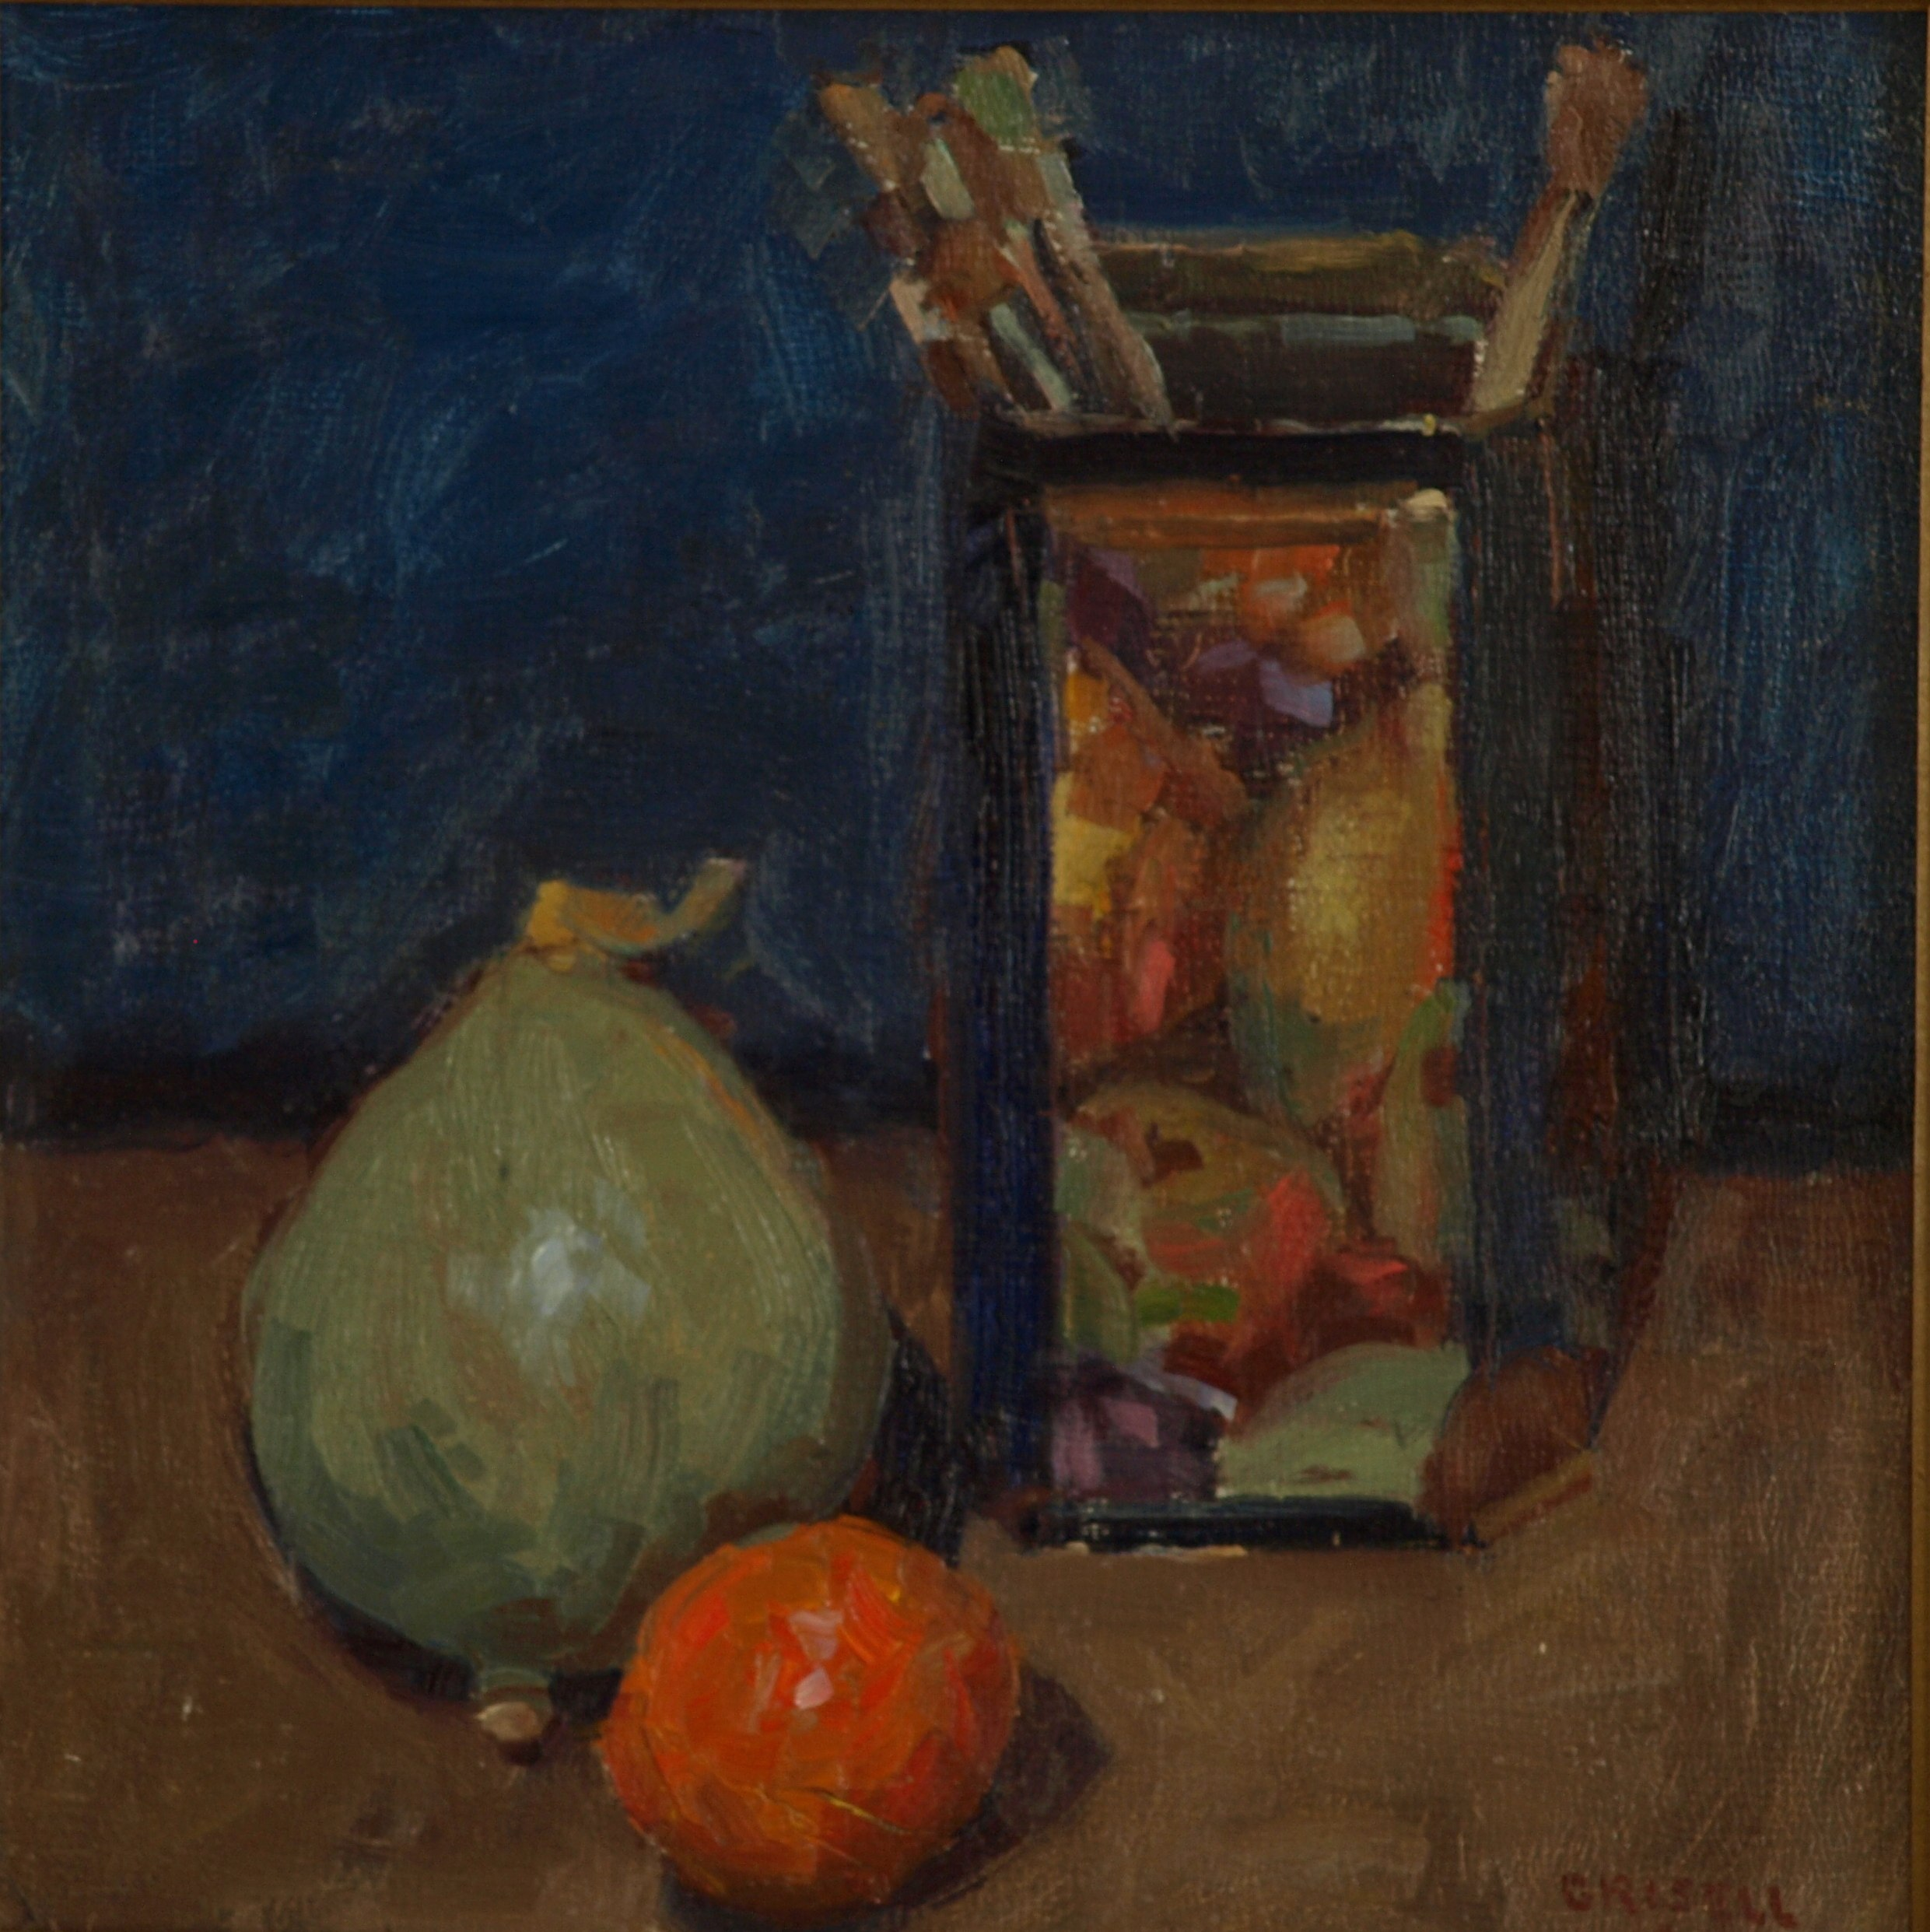 Paintbrushes Squash and Orange, Oil on Panel, 12 x 12 Inches, by Susan Grisell, $250